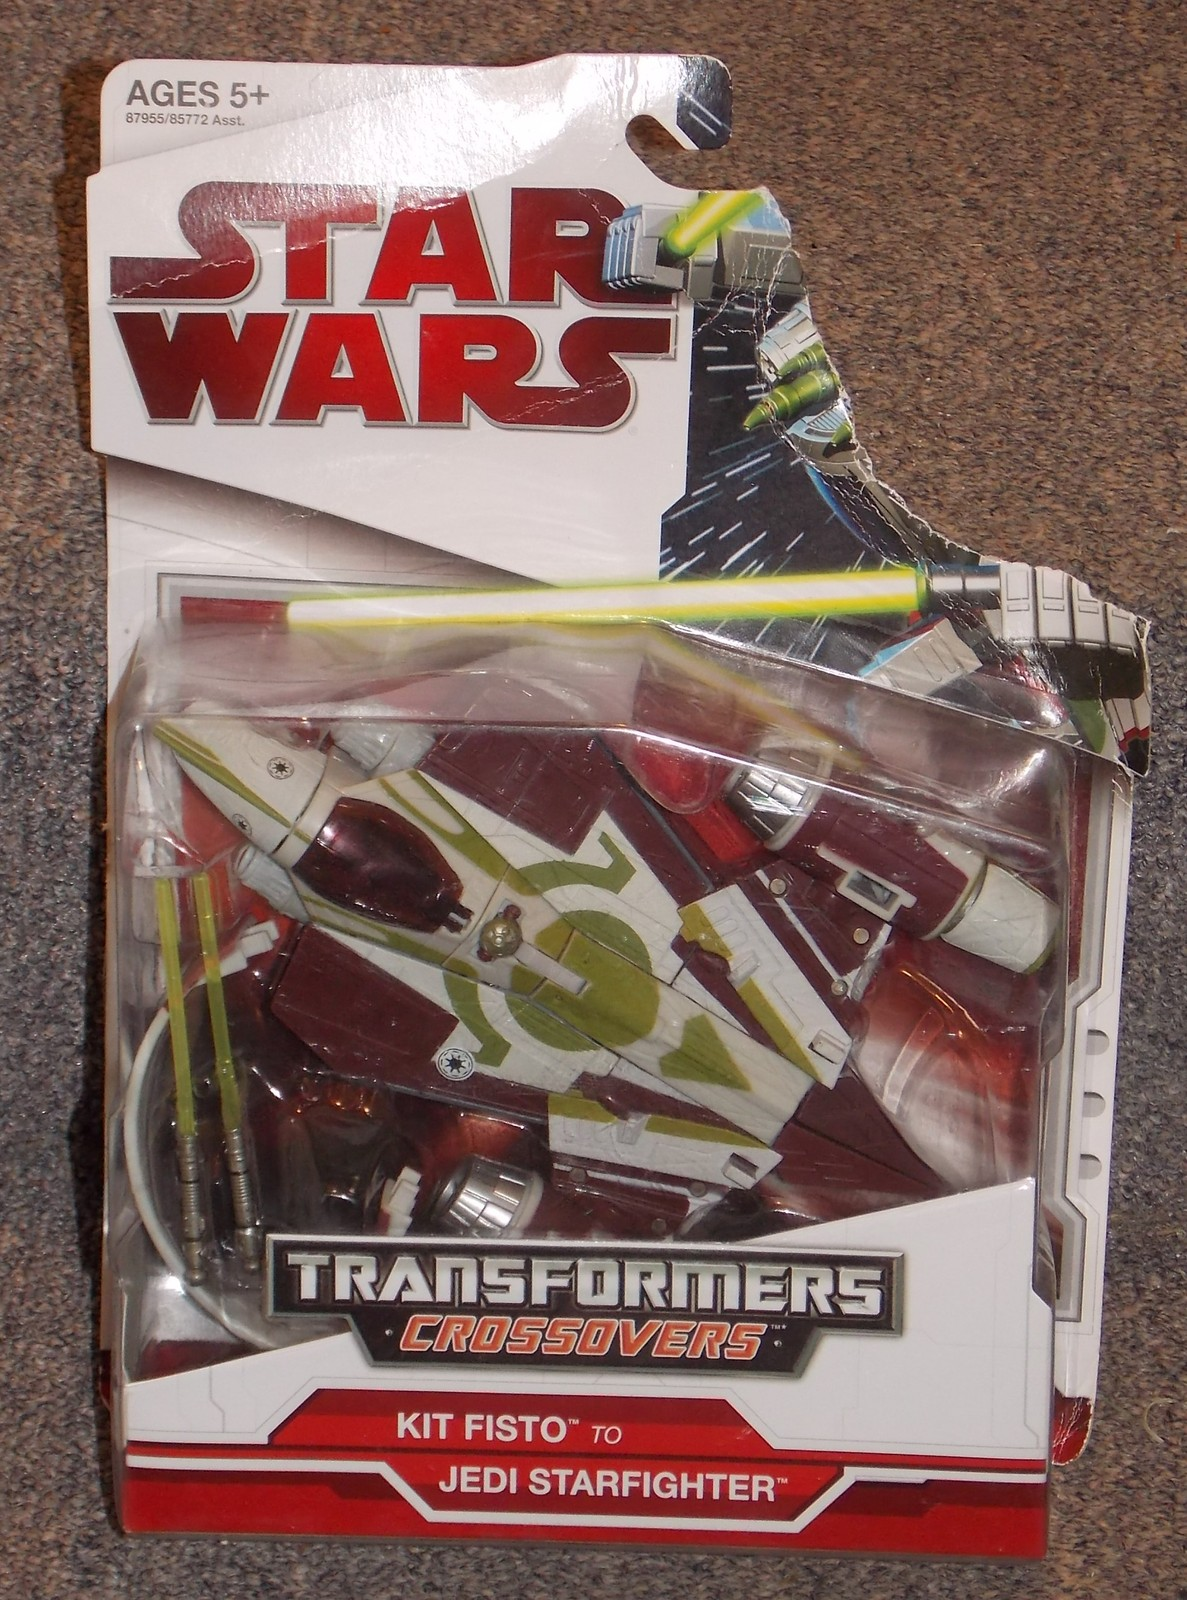 Primary image for 2009 Star Wars Transformers Crossovers Kit Fisto to Jedi Starfighter Figure NIP